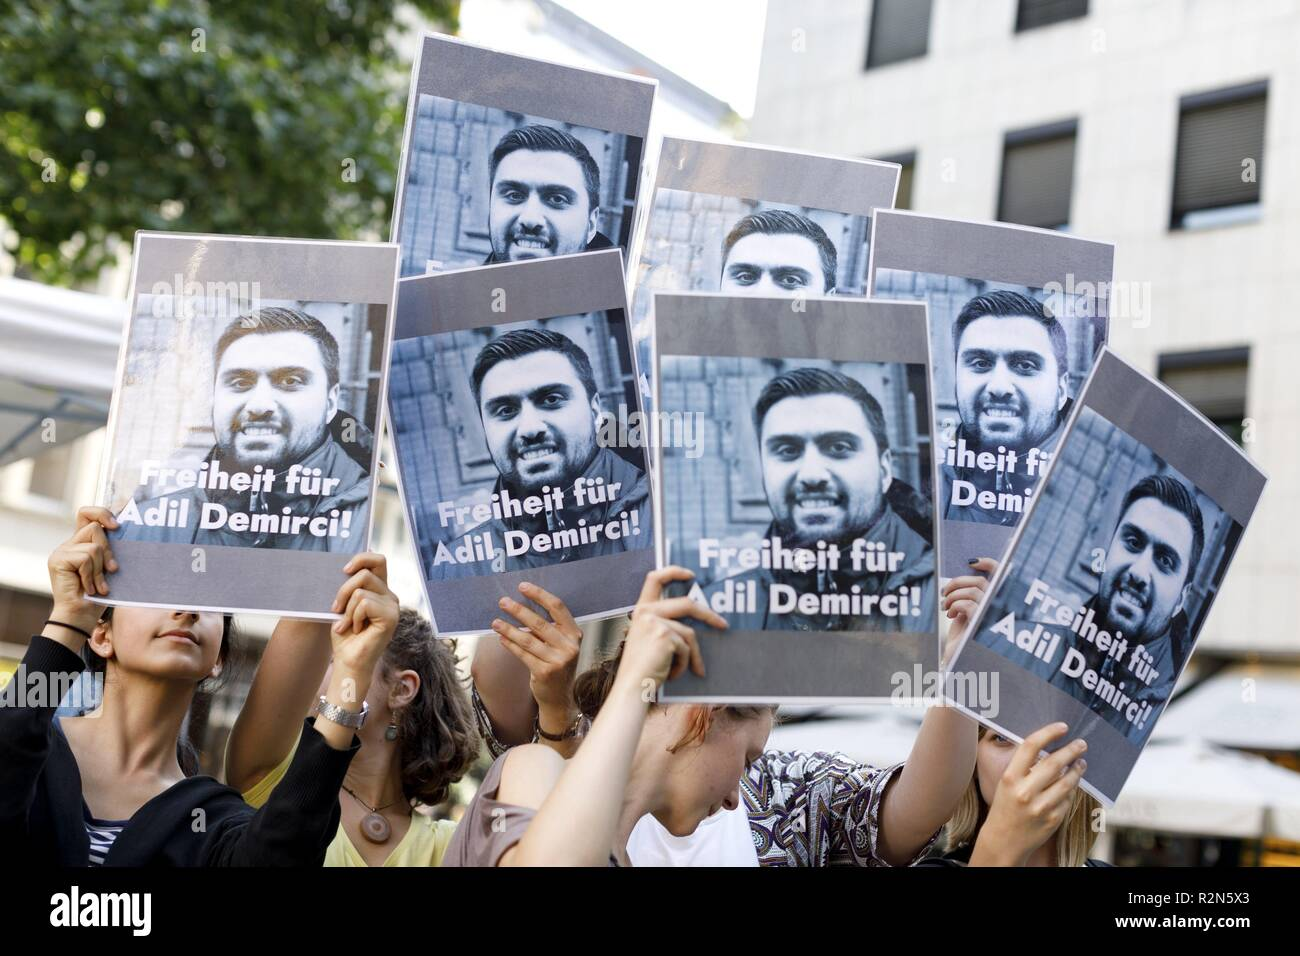 FILED - 06 June 2018, North Rhine-Westphalia, Köln: Demonstrators demand the release of Adil Demirci, a journalist detained in Turkey. (to dpa again German in Turkey before court to 20.11.2018) Photo: Christoph Hardt/Geisler-Fotopres/Geisler-Fotopress/dpa - Stock Image